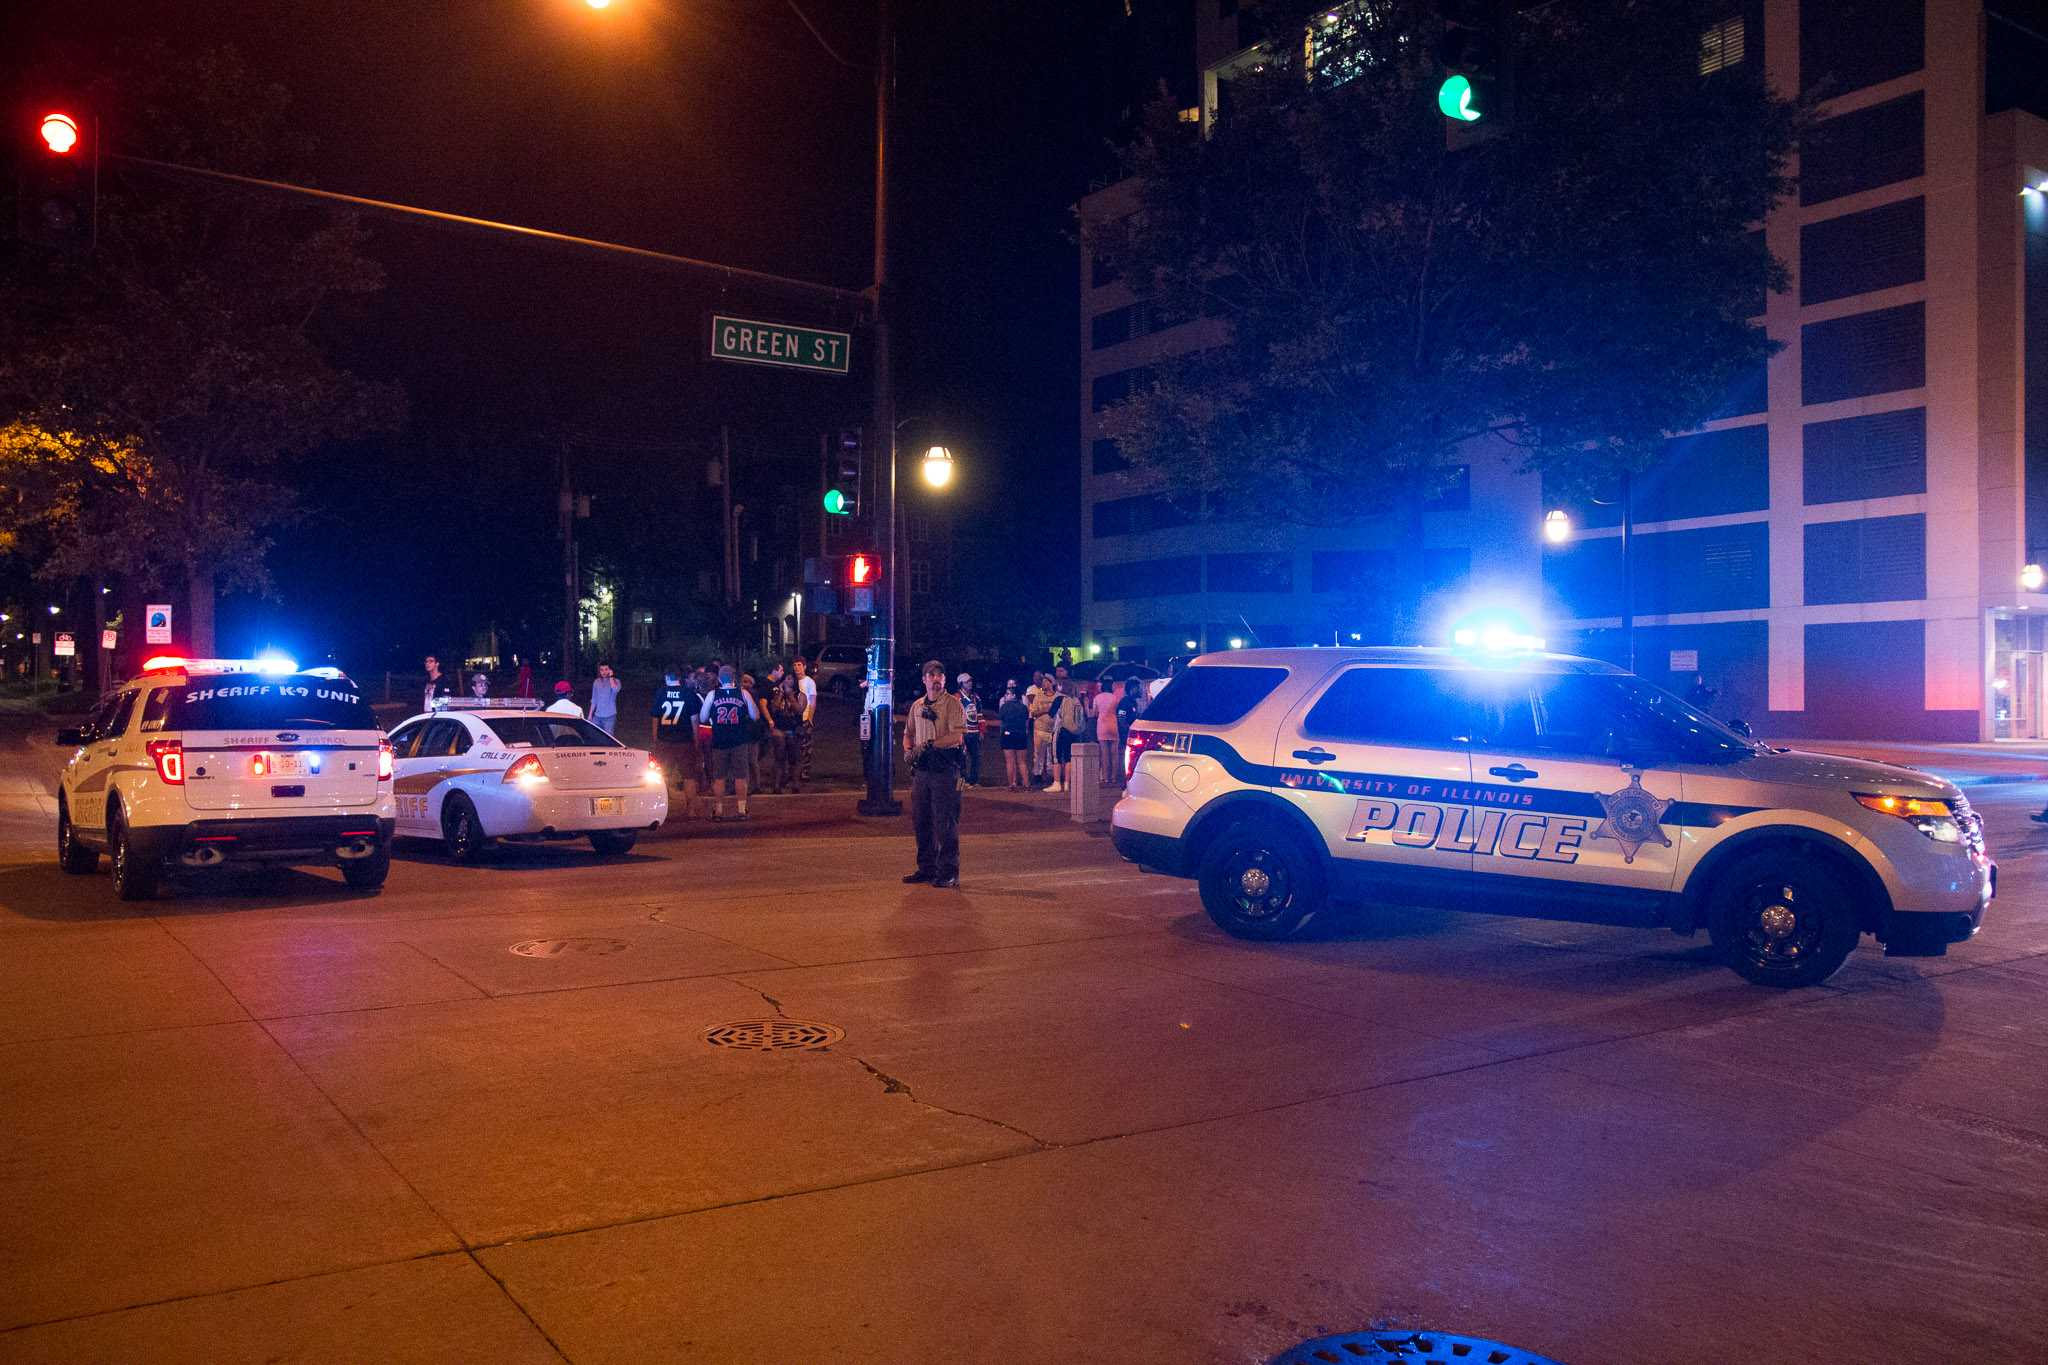 Police cars are parked at the intersection of Green and Fourth streets after a shooting that took place Sept. 25.